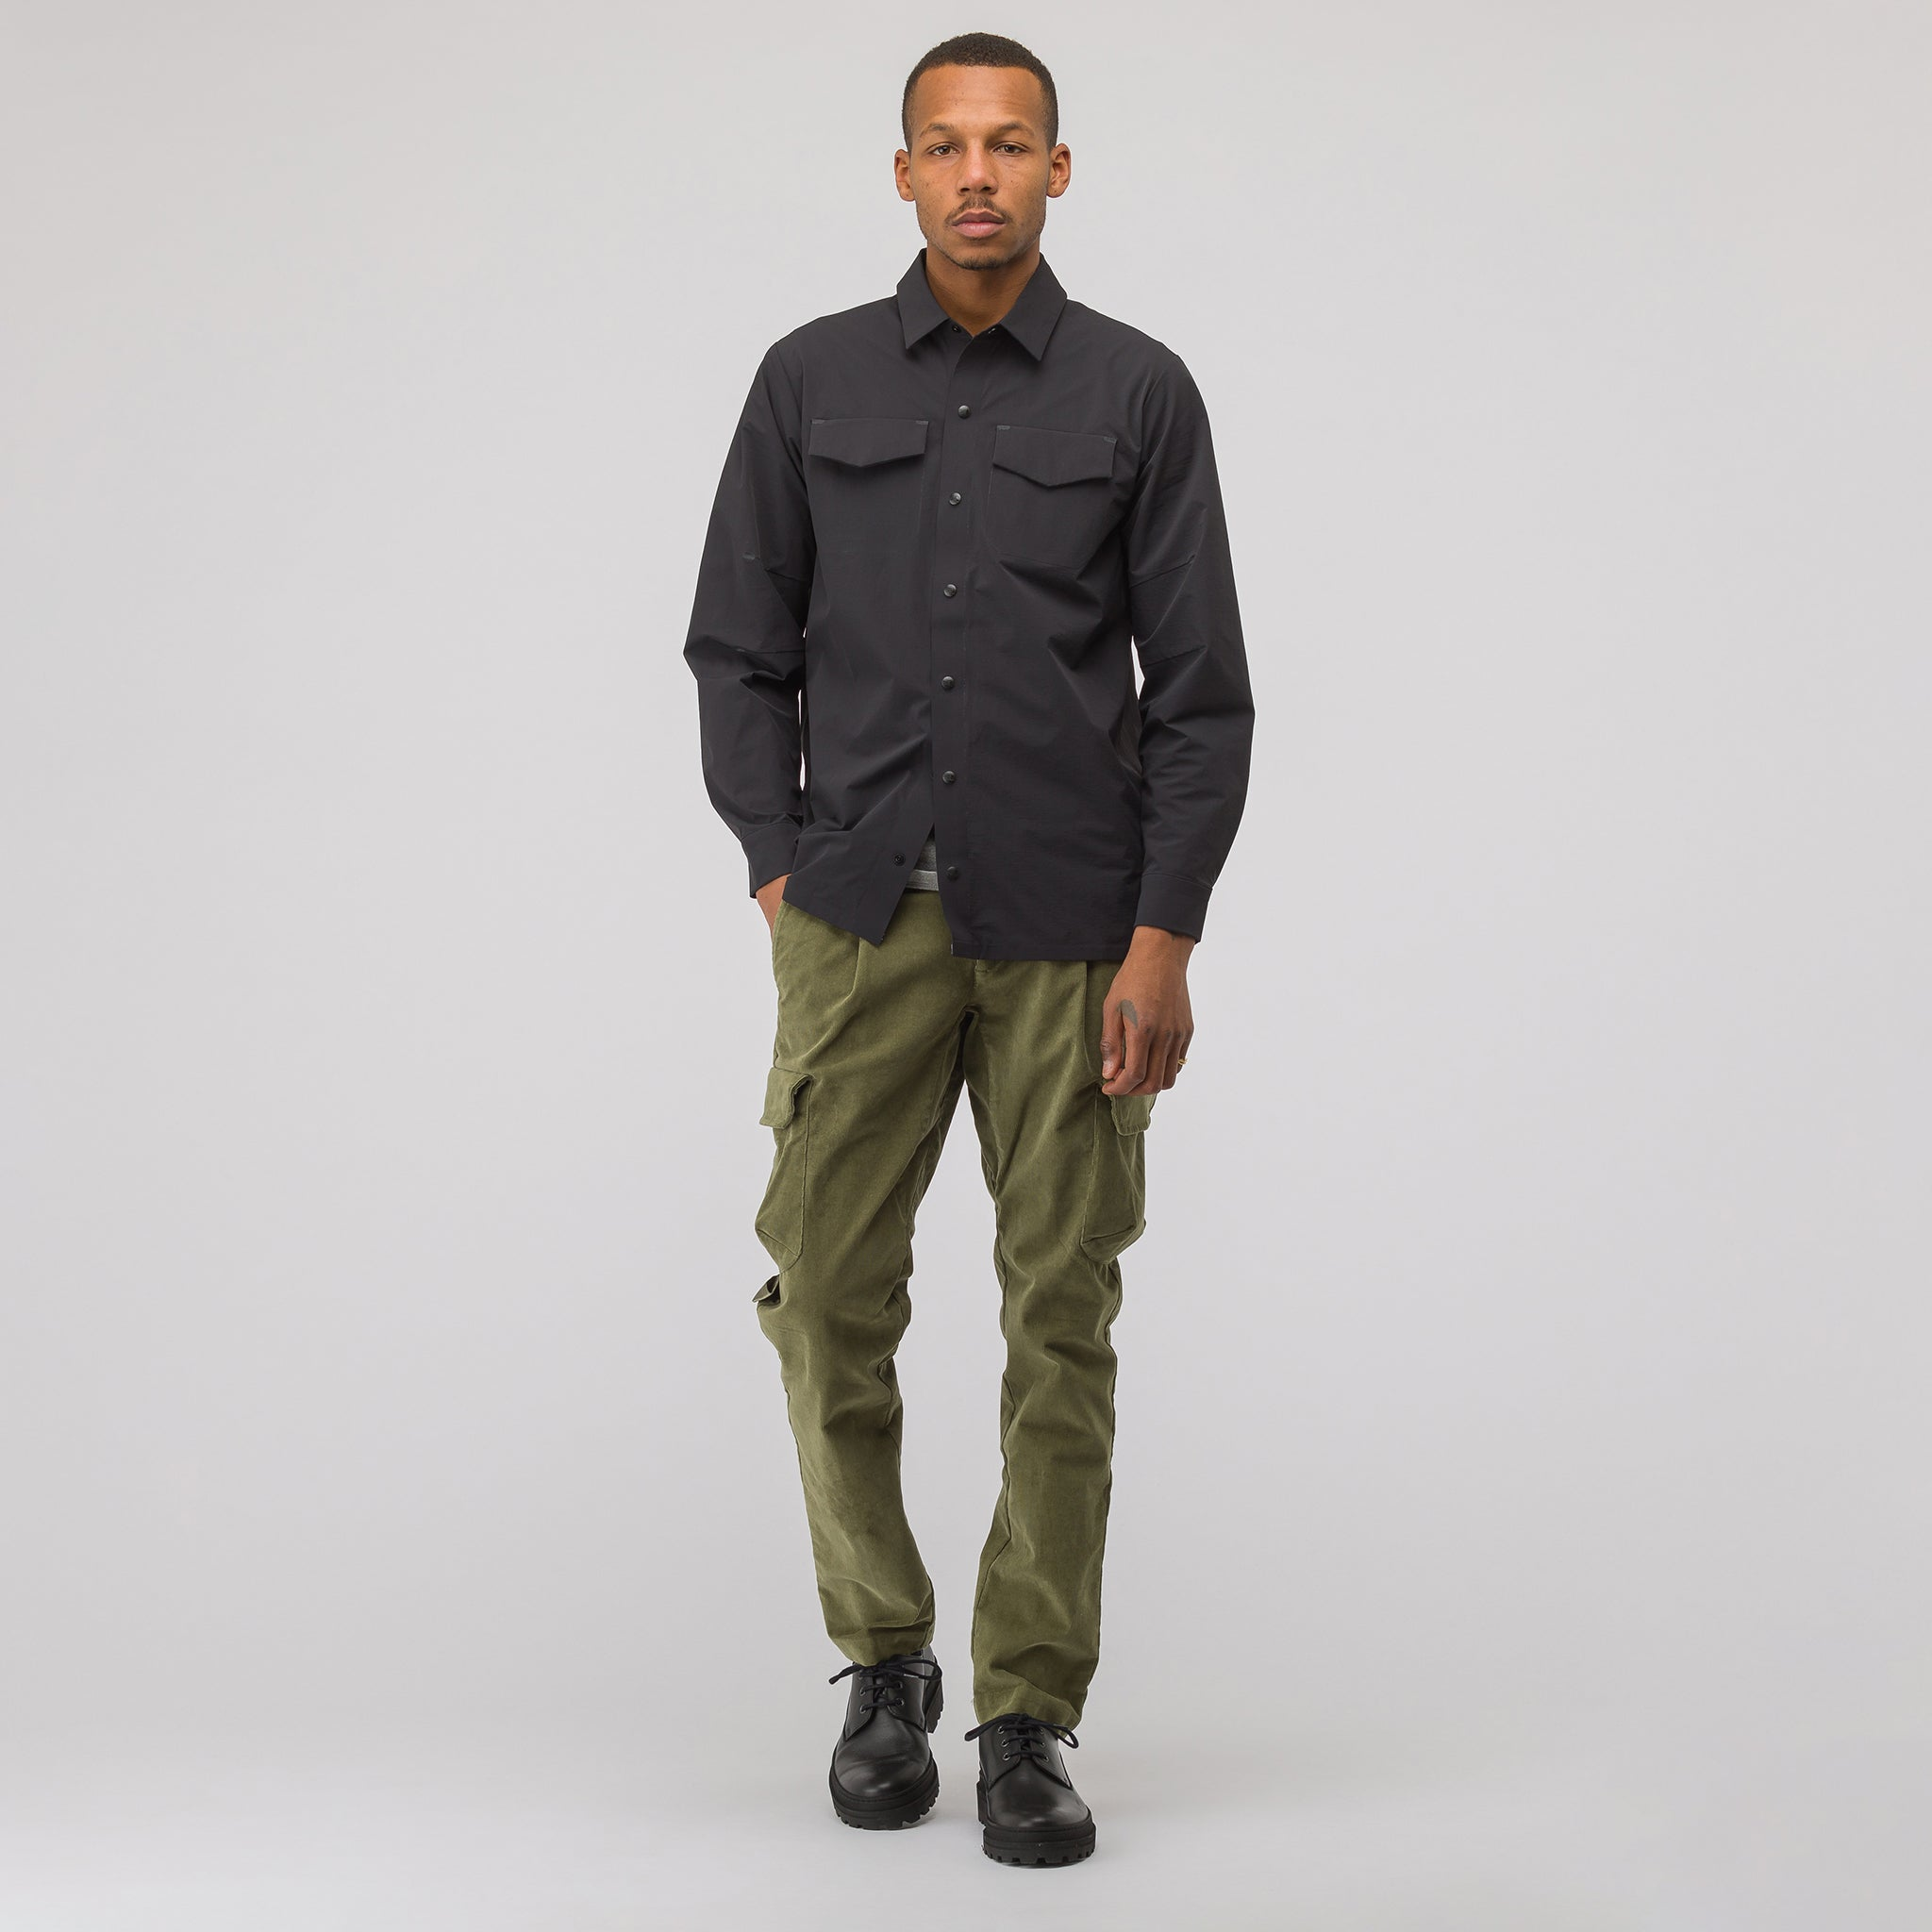 City Pockets Welding Shirt in Black